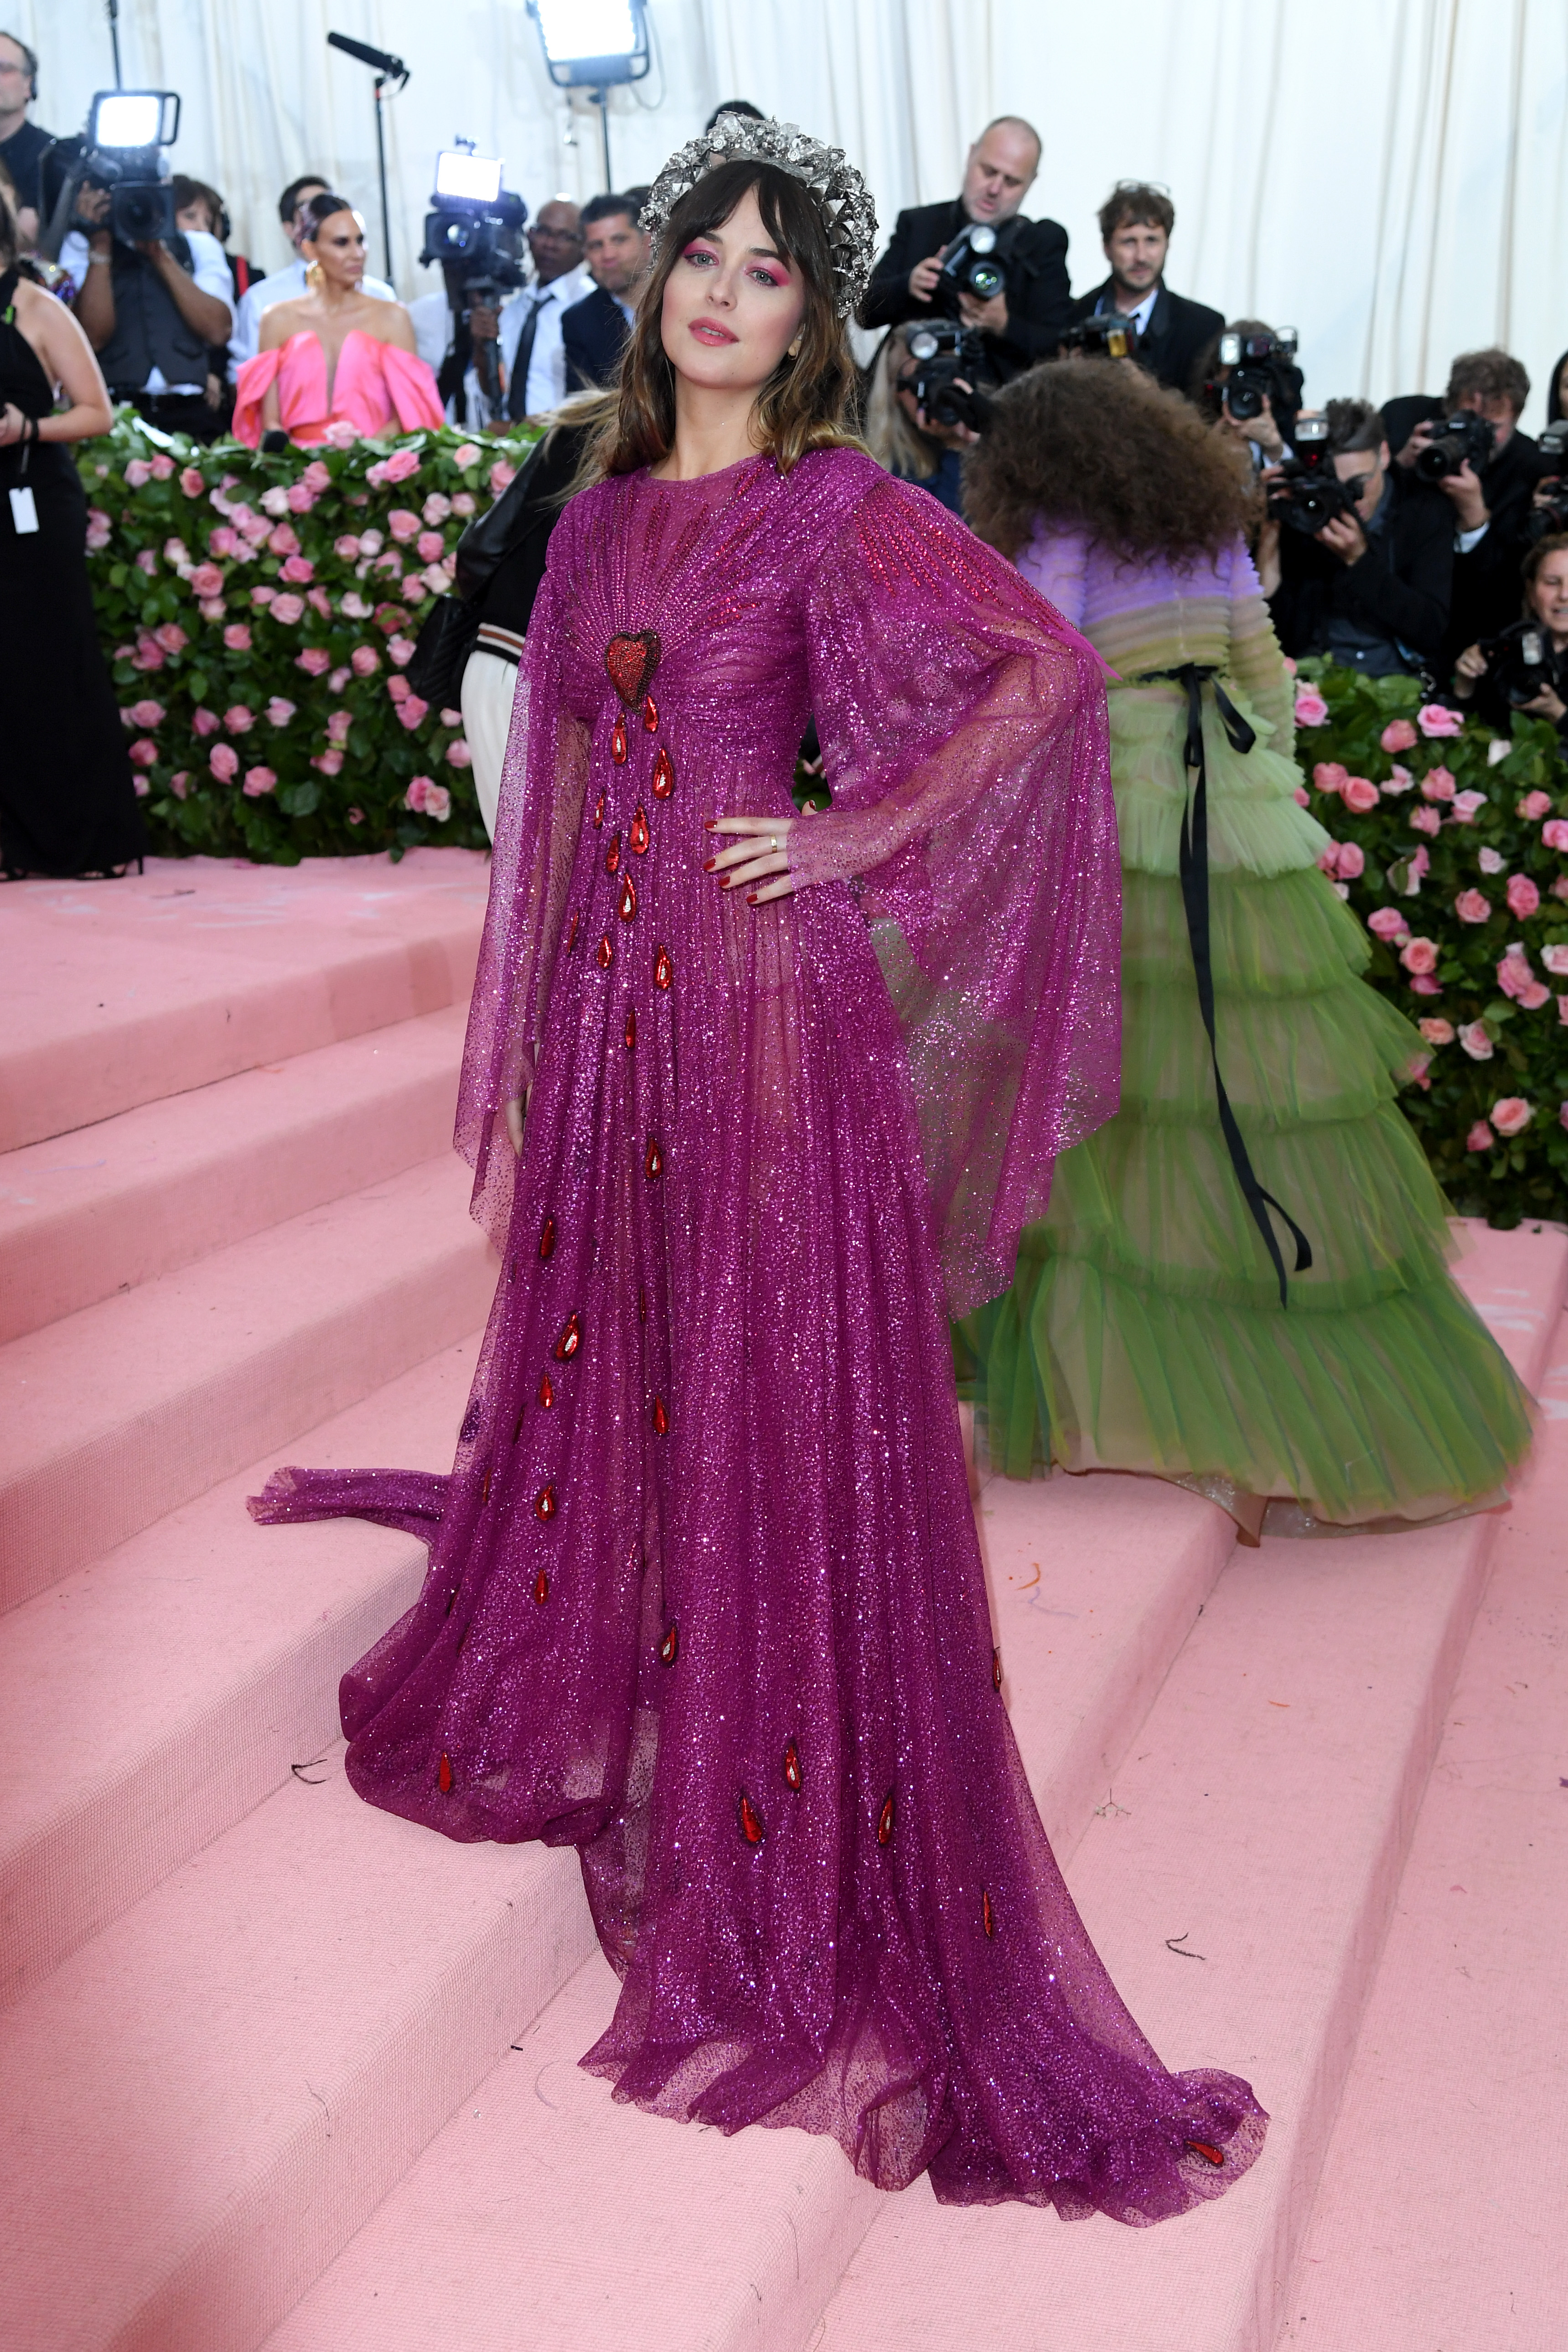 NEW YORK, NEW YORK - MAY 06: Dakota Johnson attends The 2019 Met Gala Celebrating Camp: Notes On Fashion at The Metropolitan Museum of Art on May 06, 2019 in New York City. (Photo by Karwai Tang/WireImage )